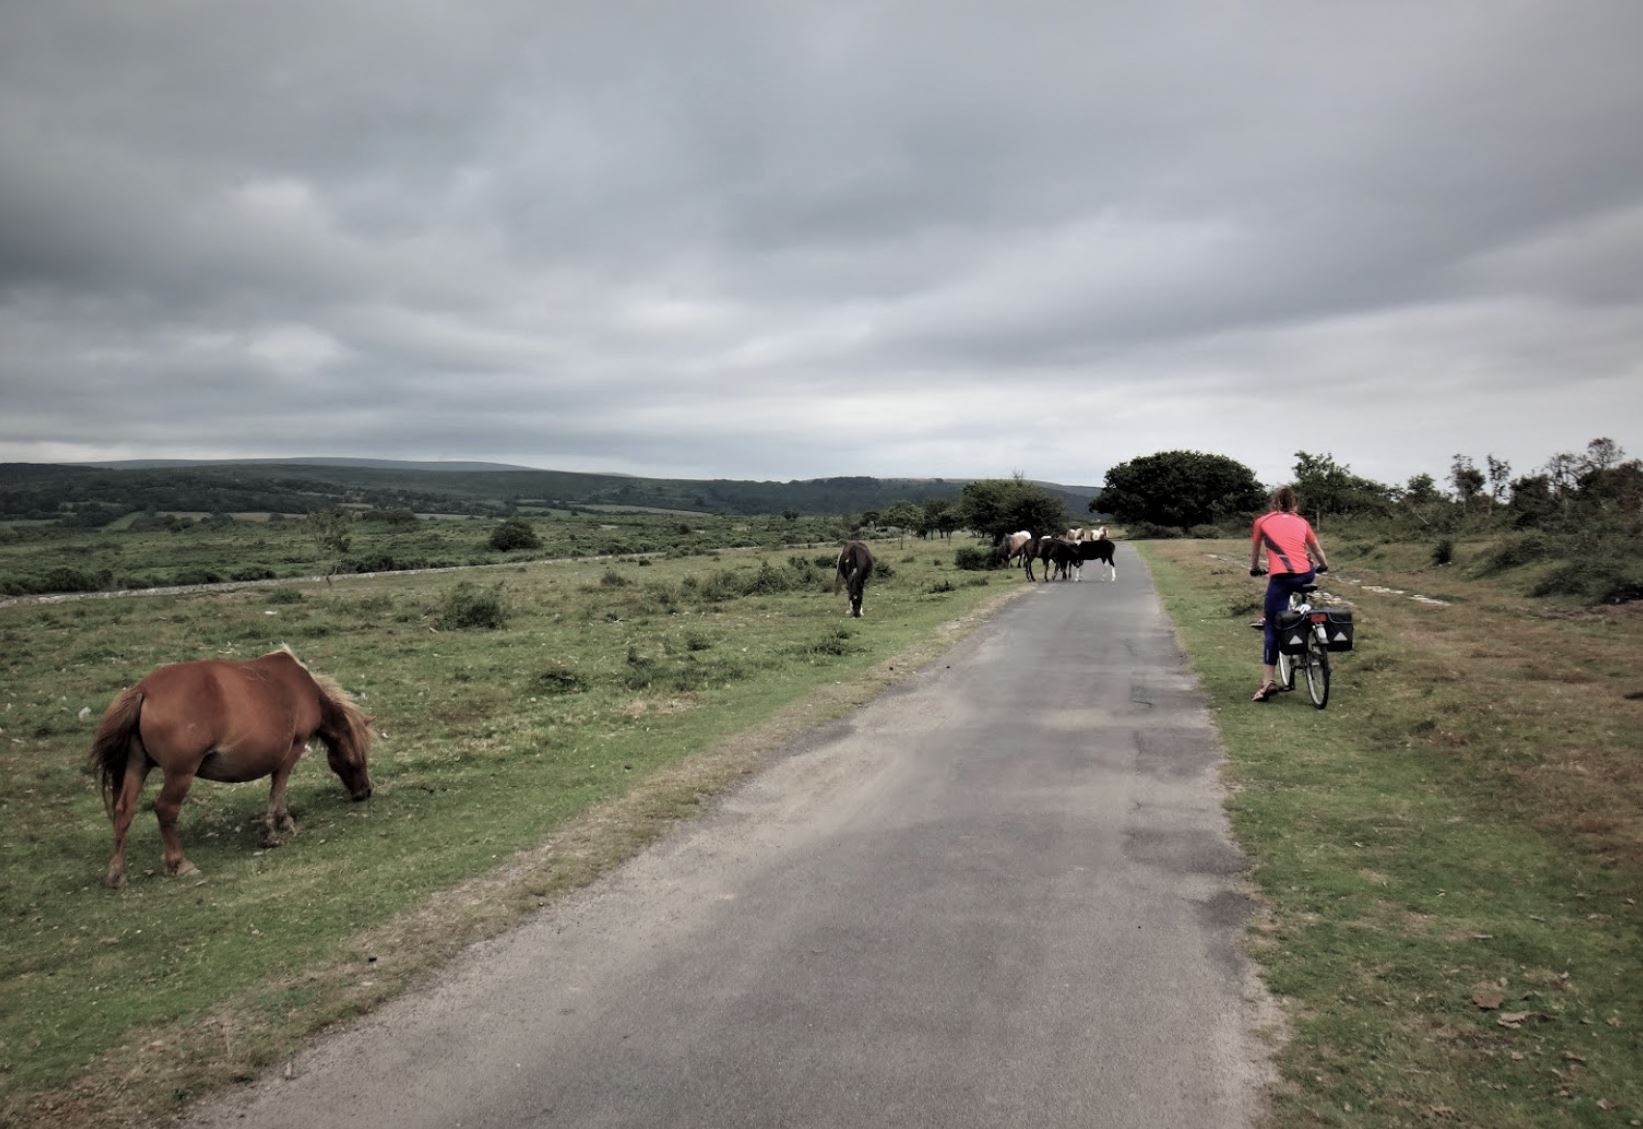 voyage Angleterre à vélo poneys chevaux sauvages